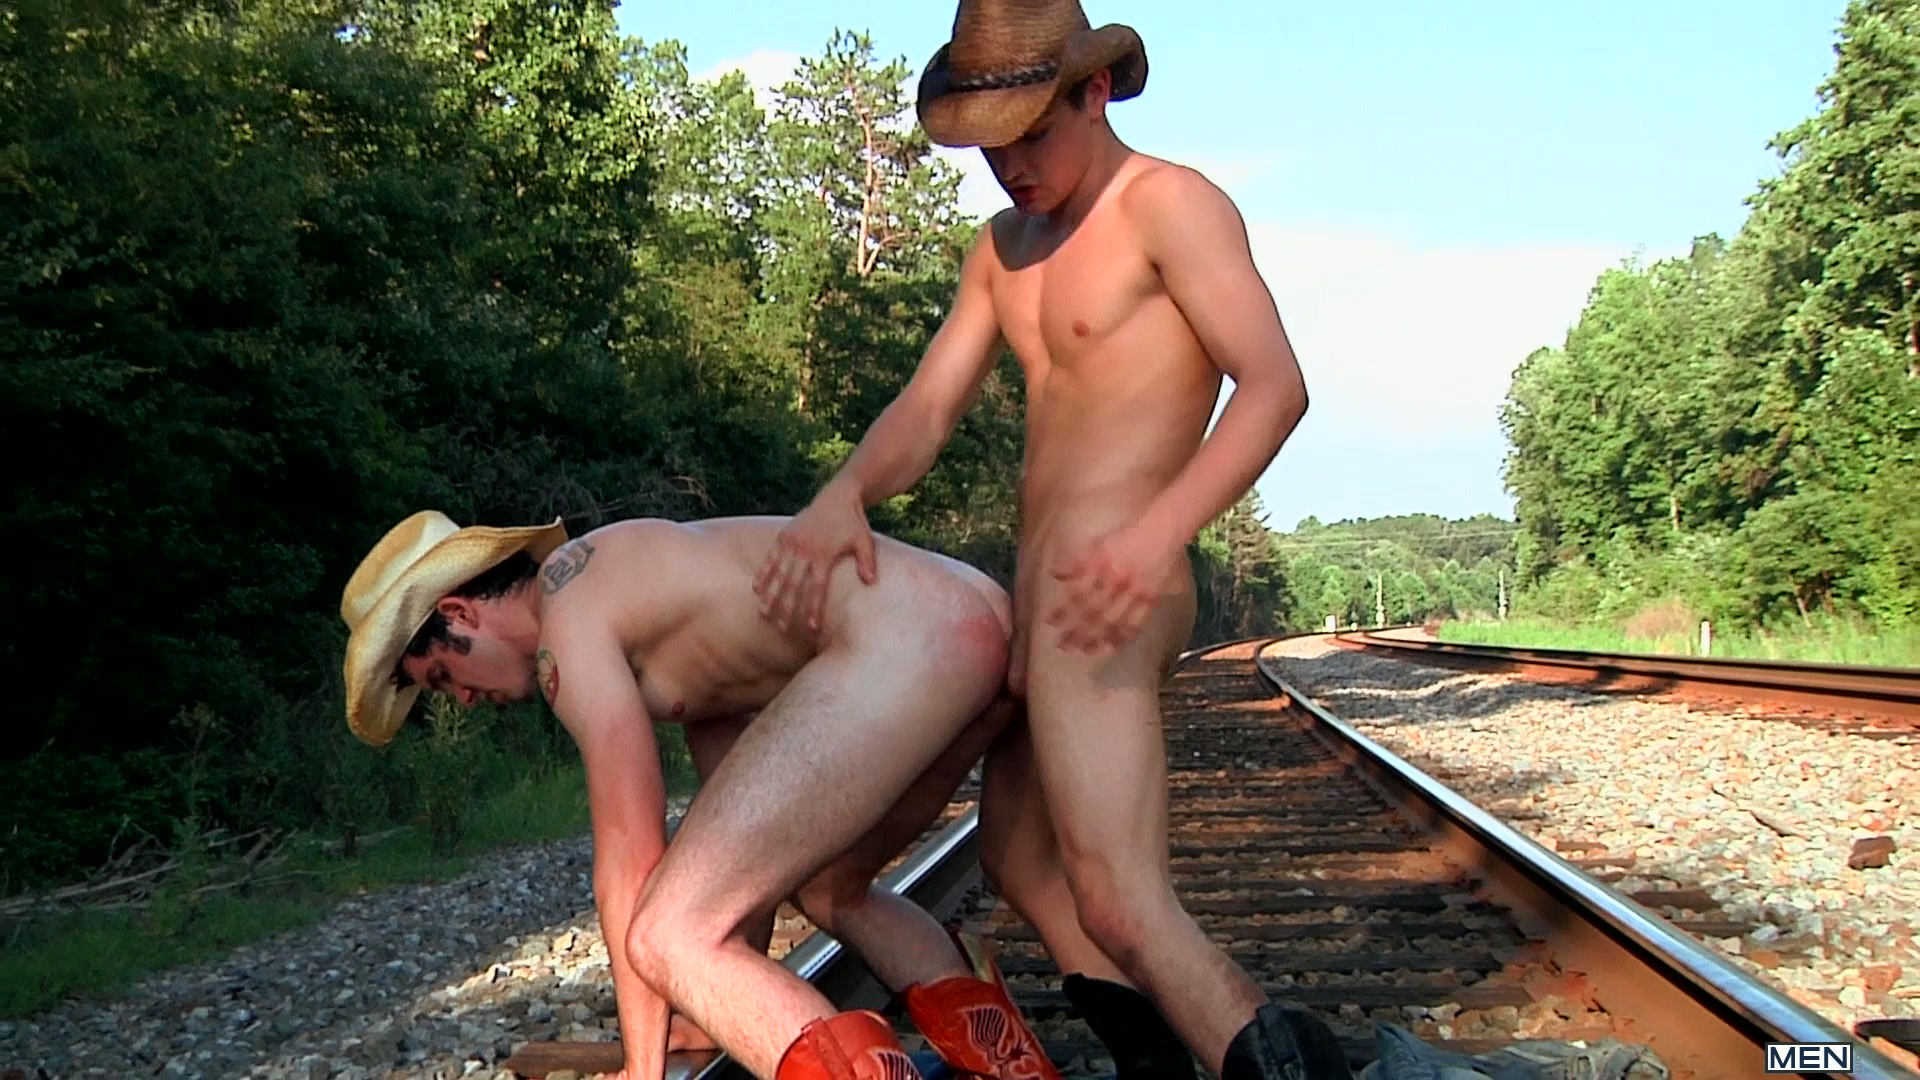 Watch Going West Part 2 – Dmh – Drill My Hole – Johnny Rapid And Robbie Rivers (MEN.COM) Gay Porn Tube Videos Gifs And Free XXX HD Sex Movies Photos Online